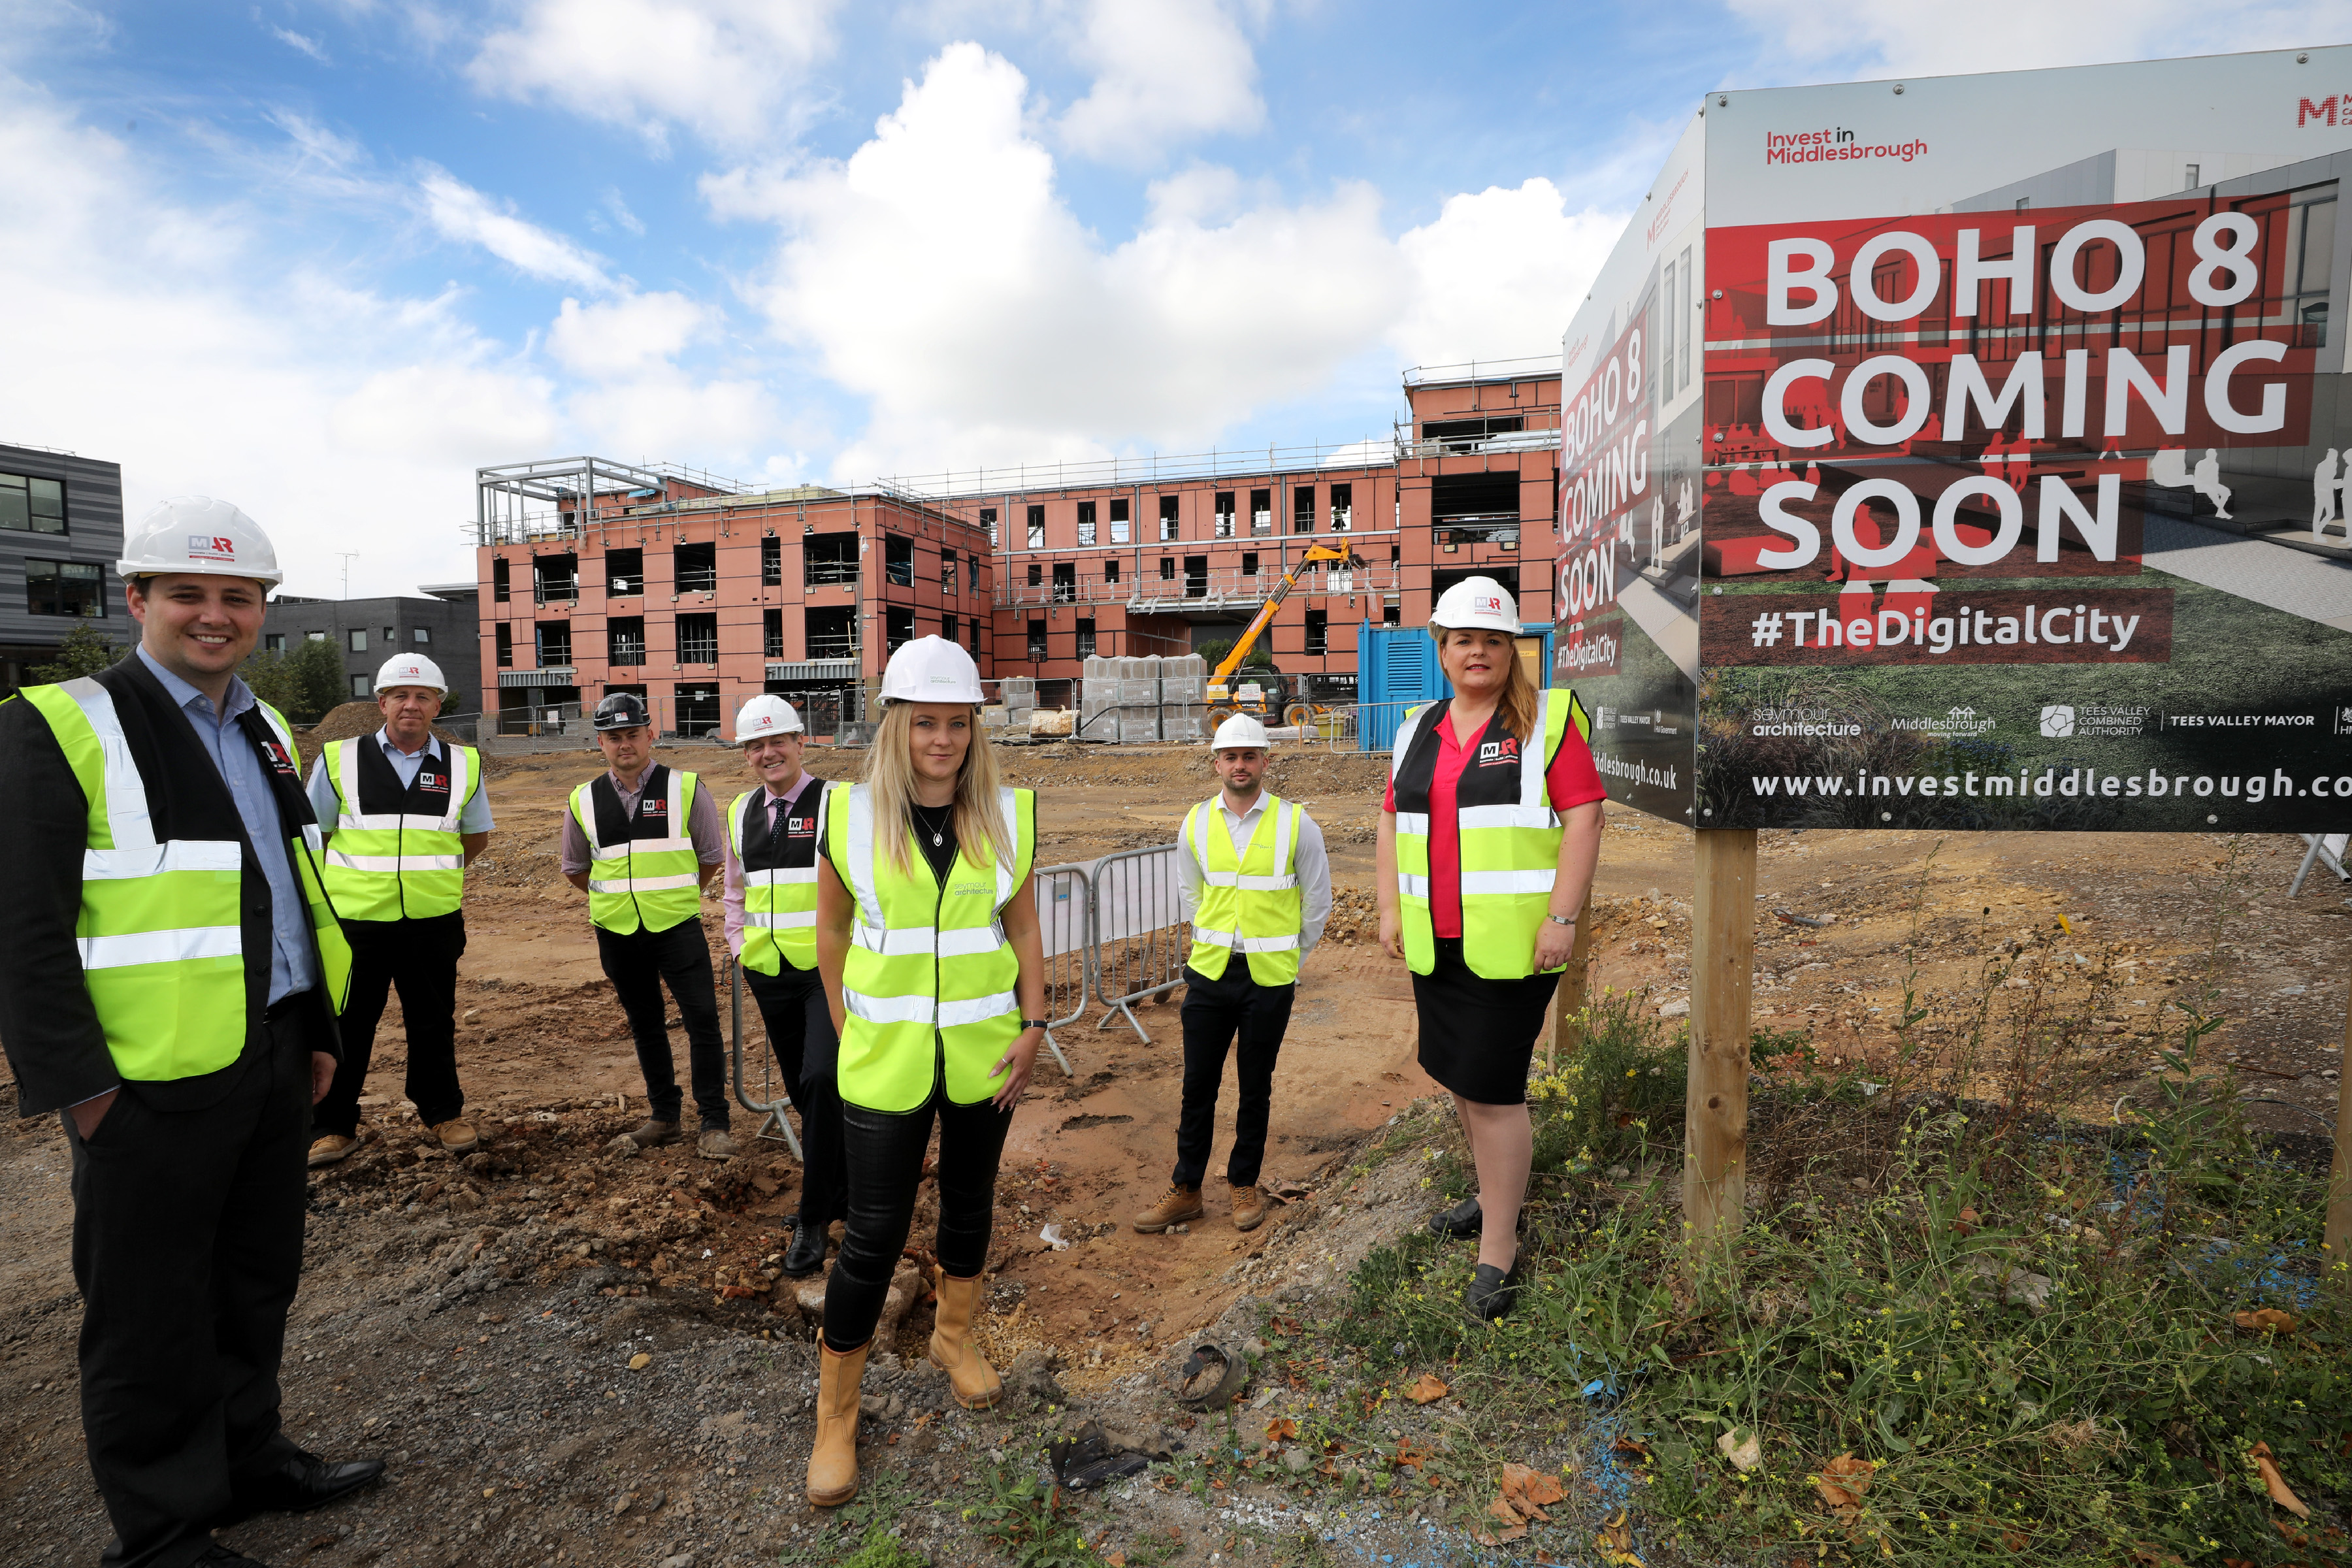 Construction underway for the ambitious BoHo 8 modular offices project